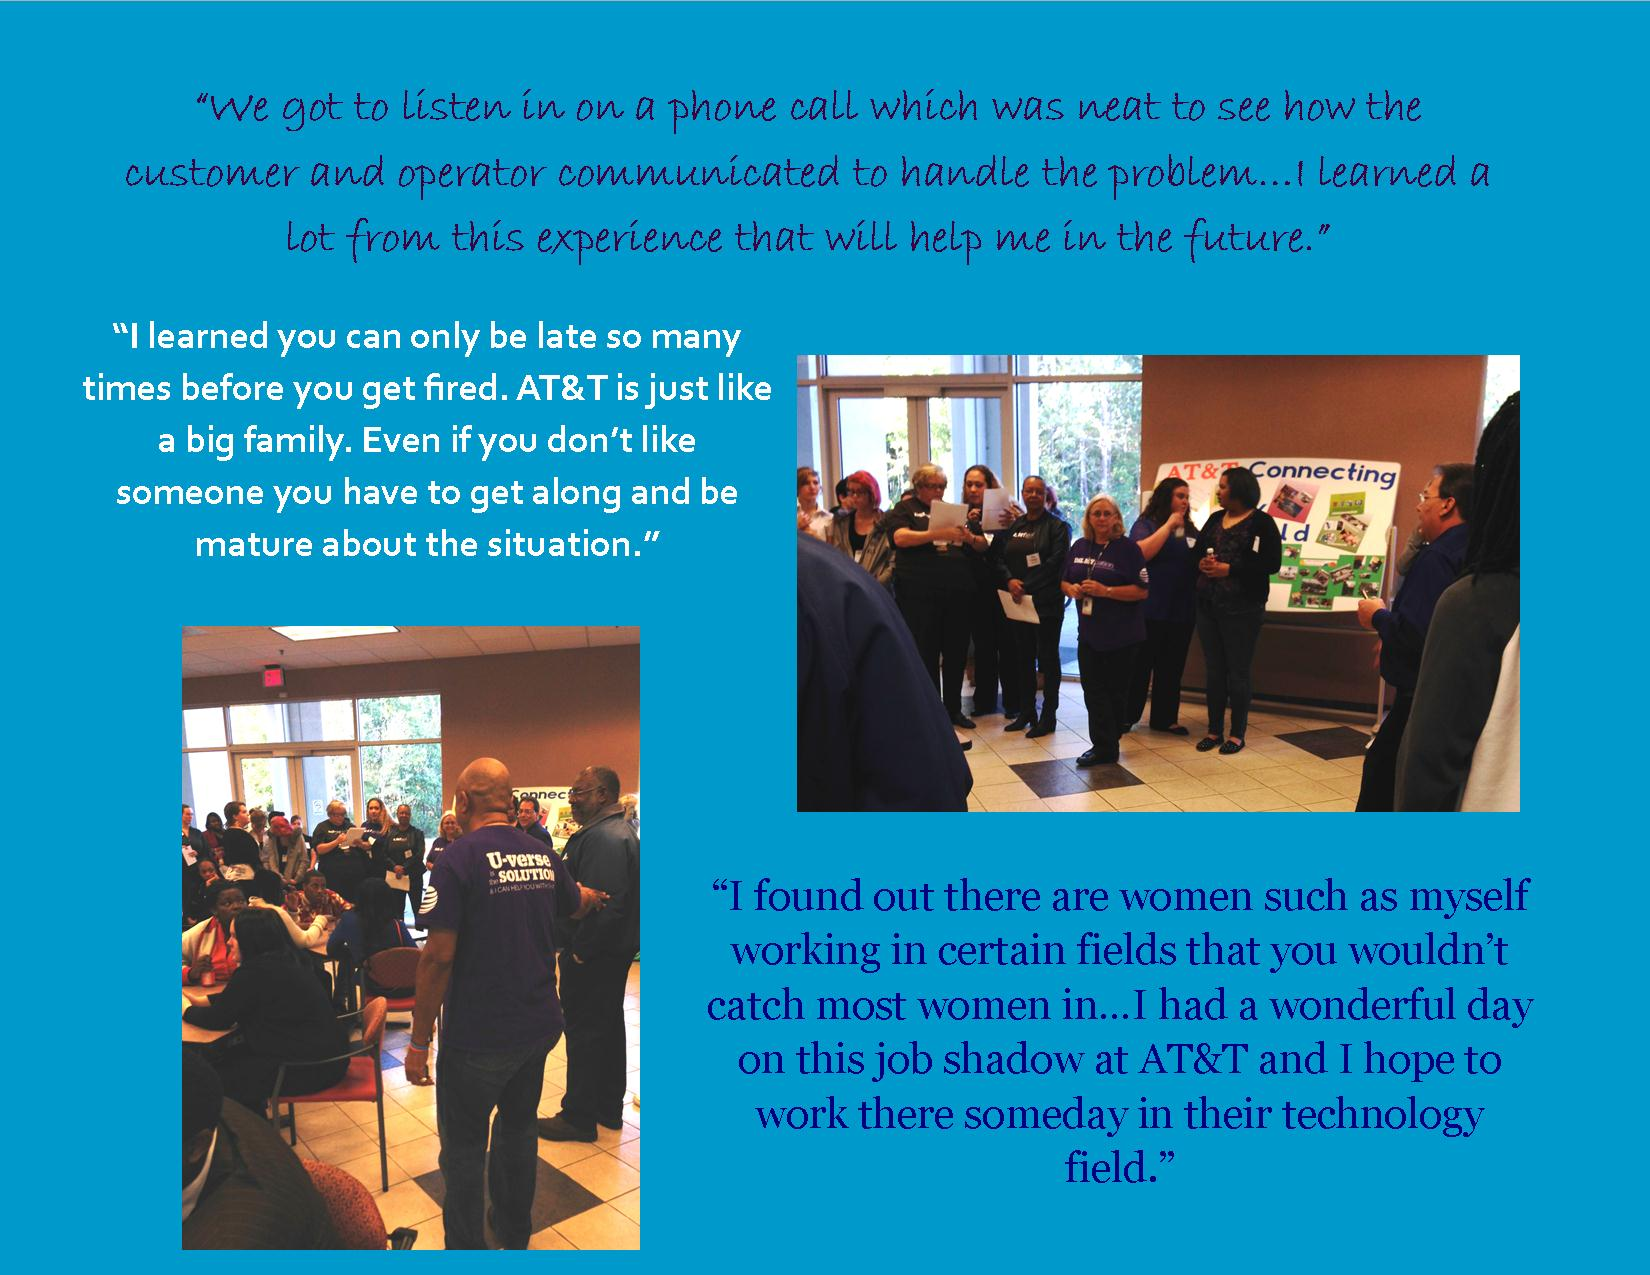 job shadow junior achievement of north florida excerpts from participant letters about their experience at at t